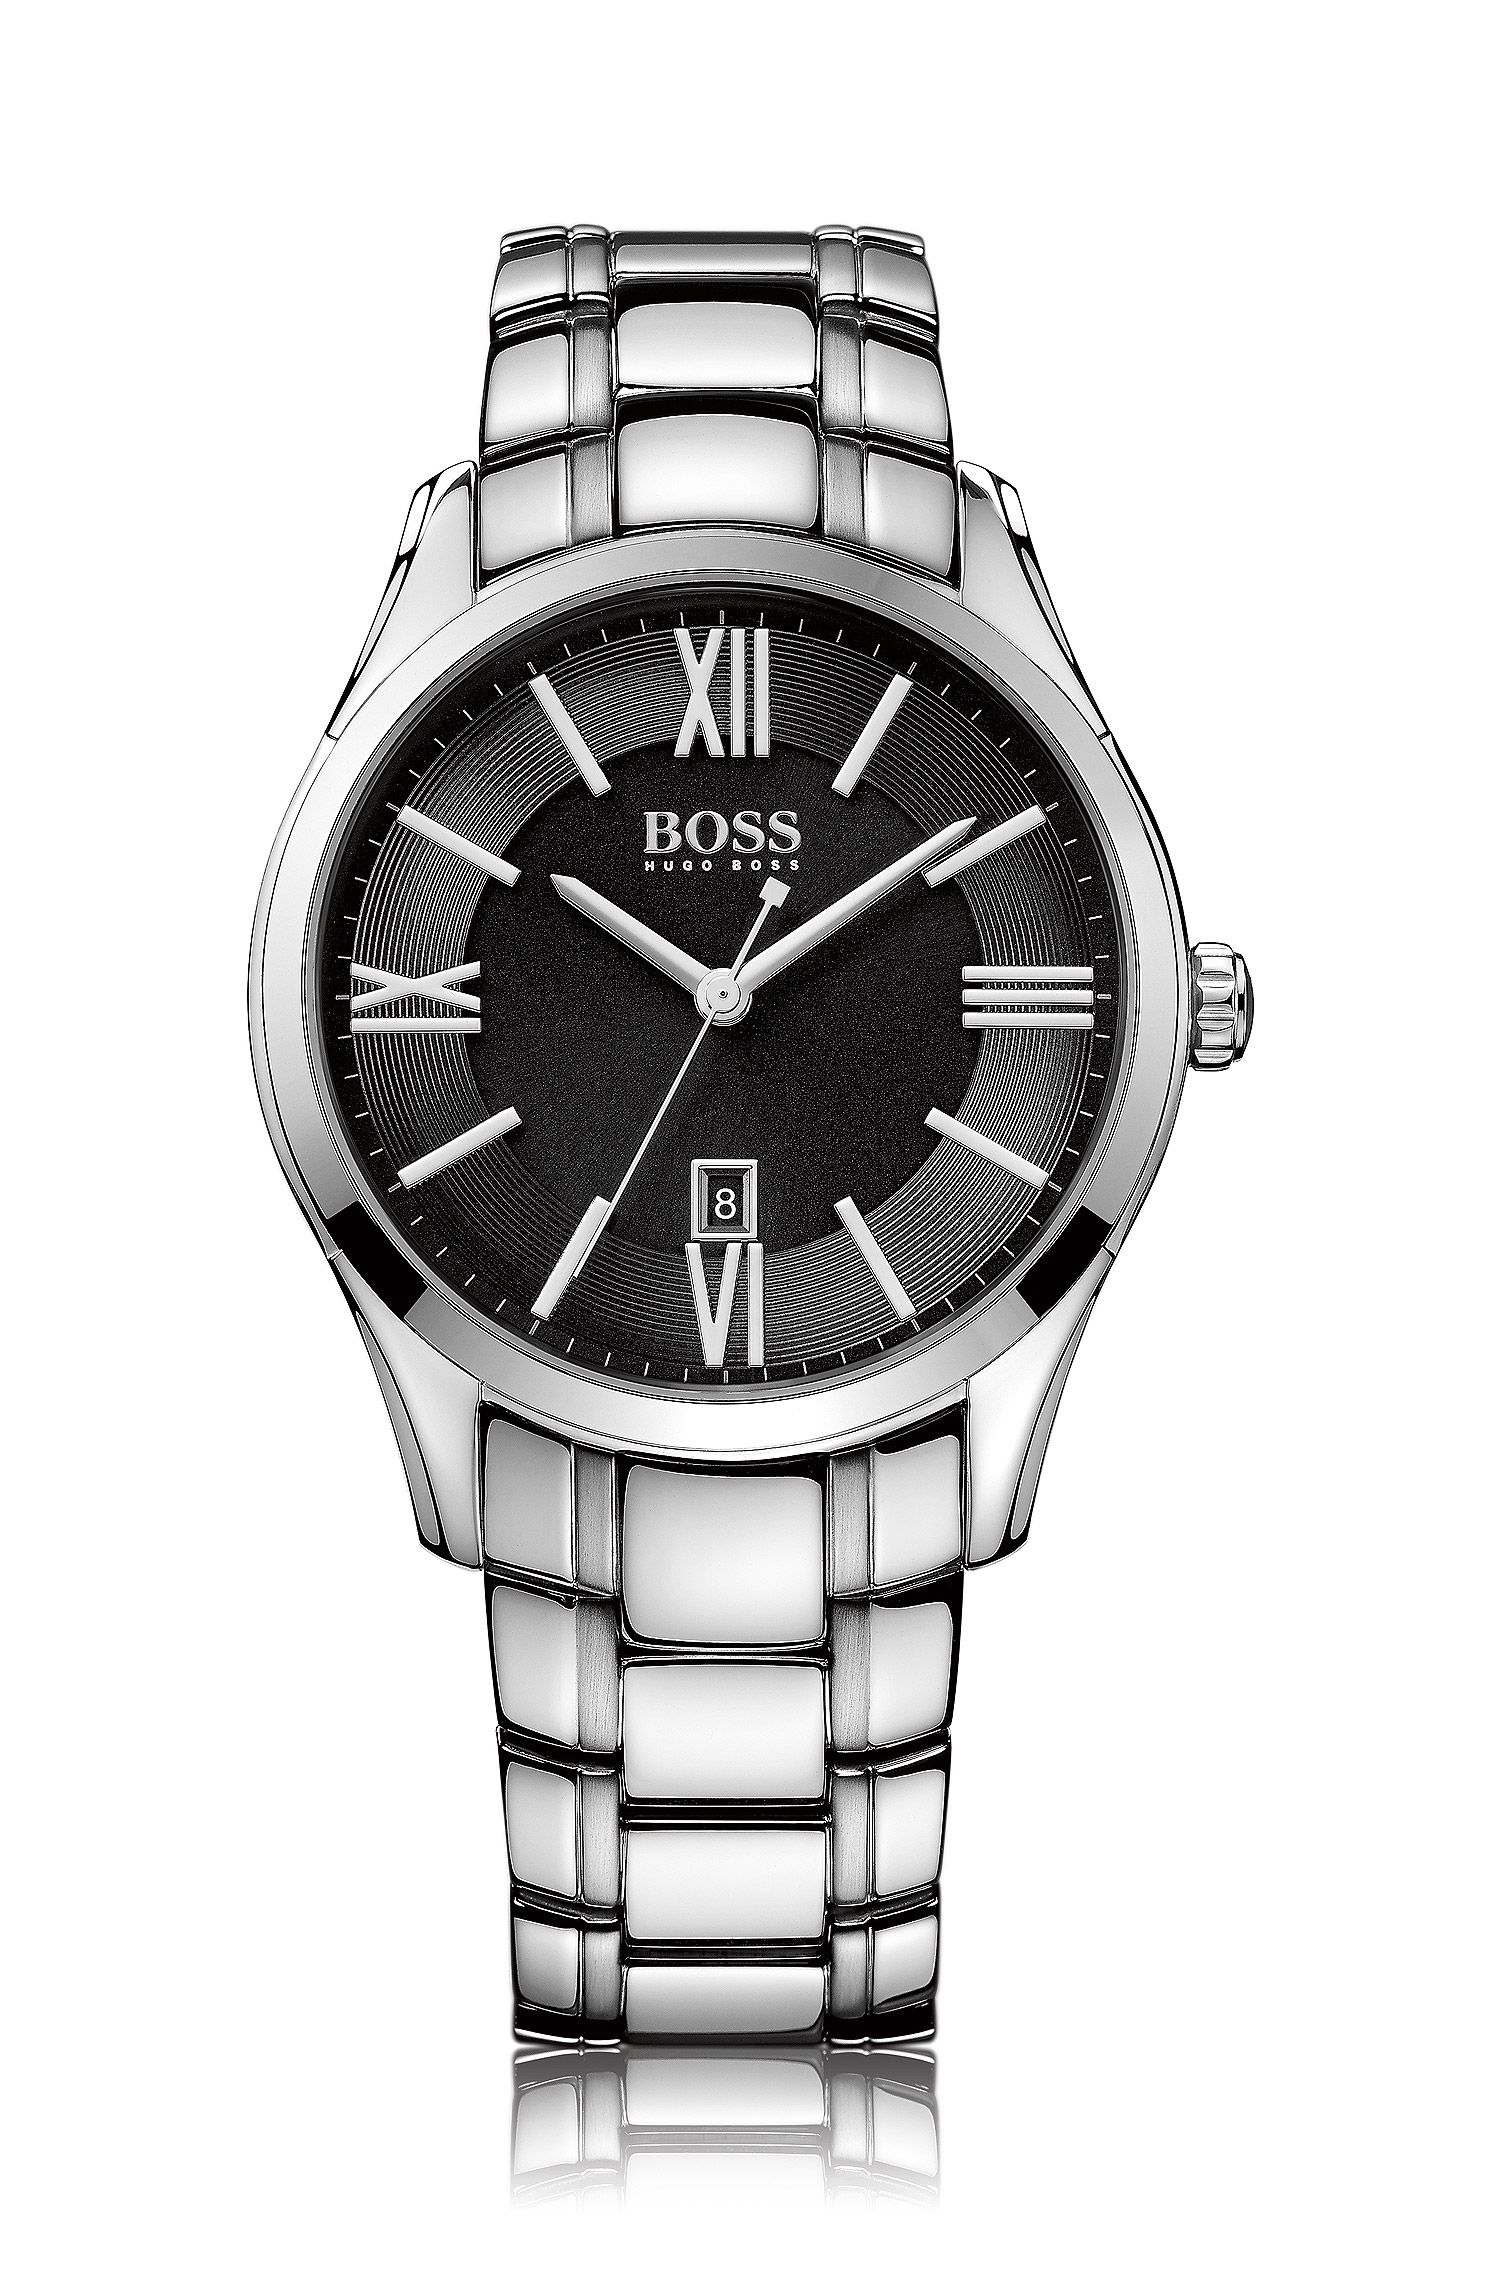 Polished stainless-steel watch with black sunray dial and tapered bracelet